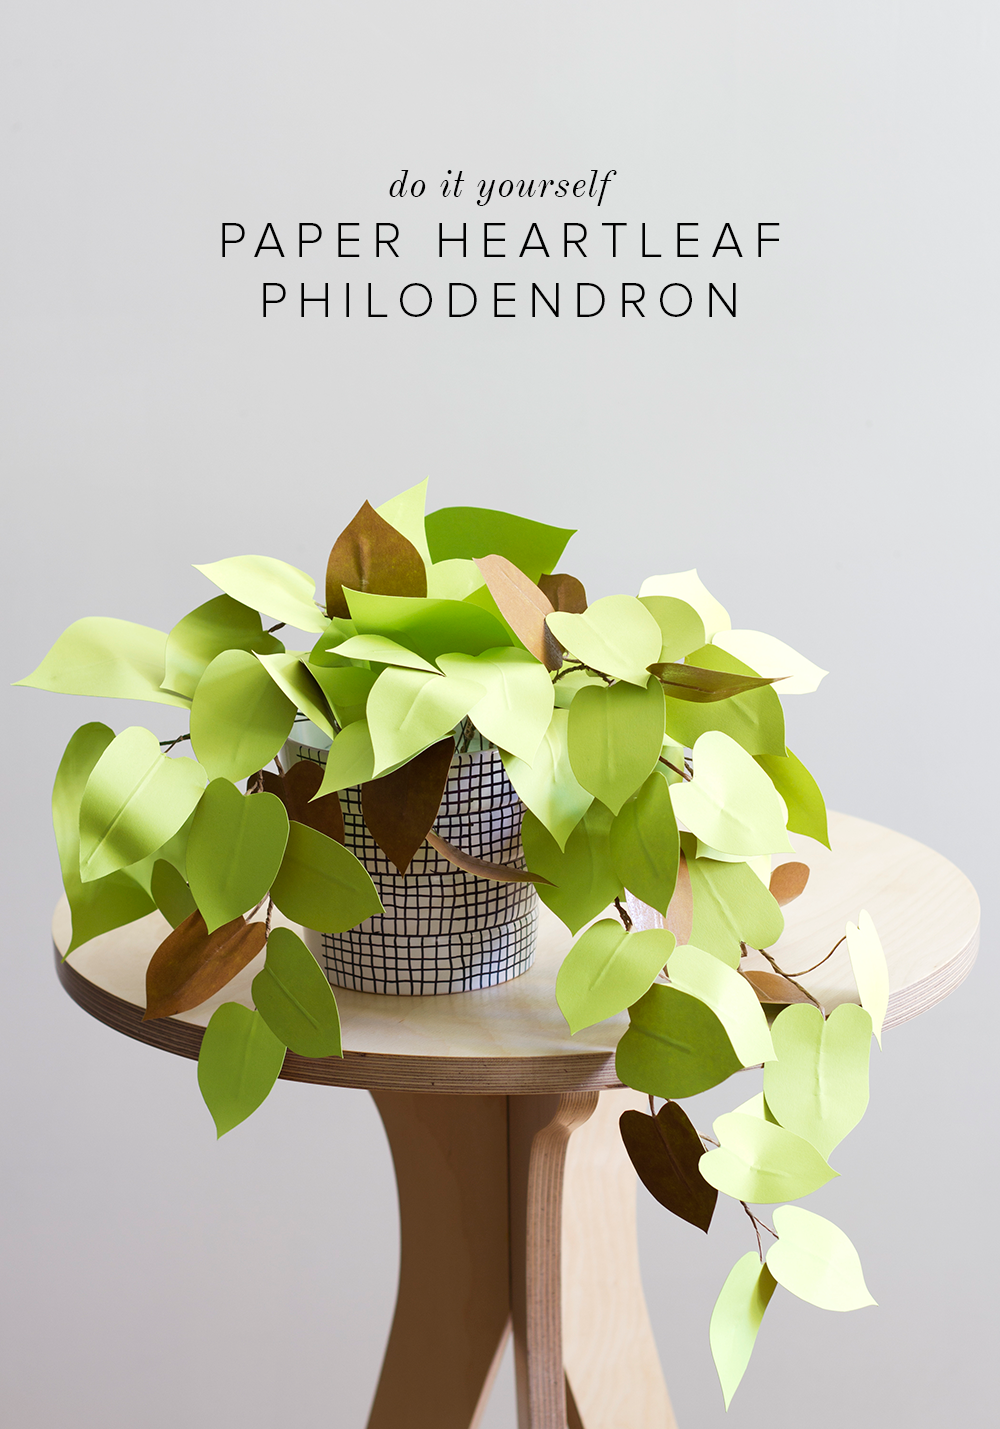 DIY paper heart leaf philodendron